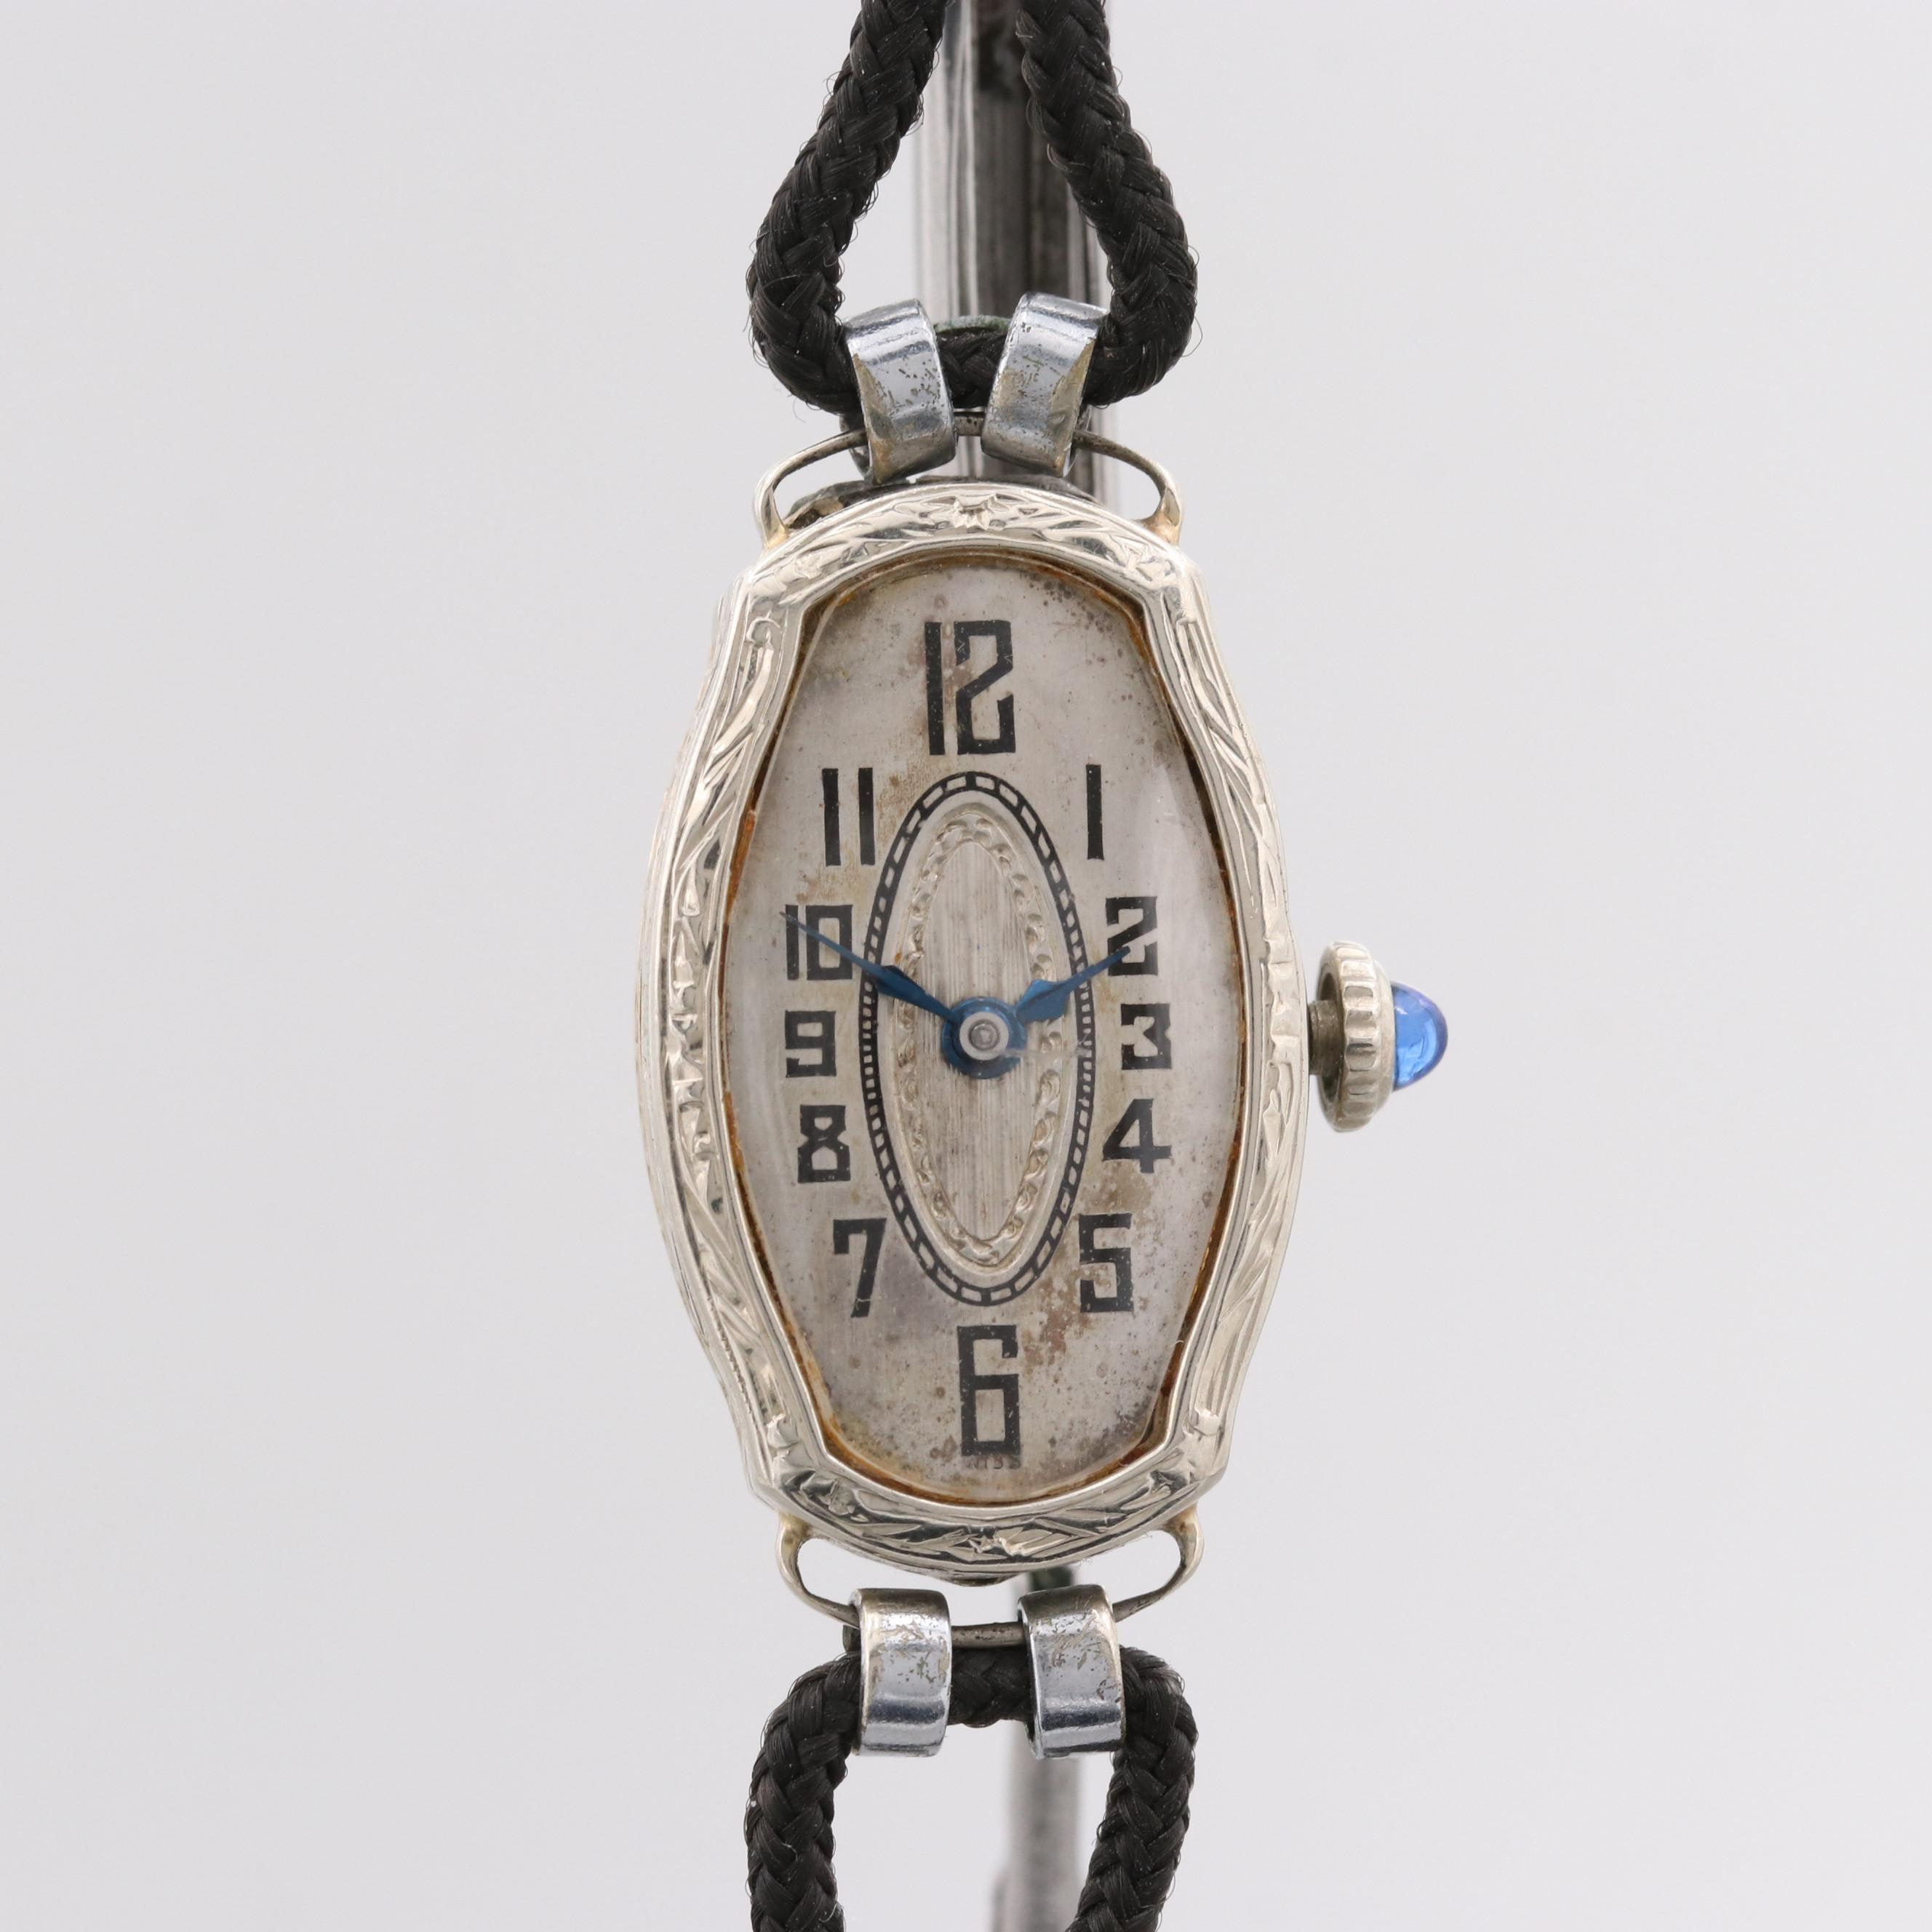 Vintage 14K White Gold Stem Wind Wristwatch With Blue Glass Crown Accent